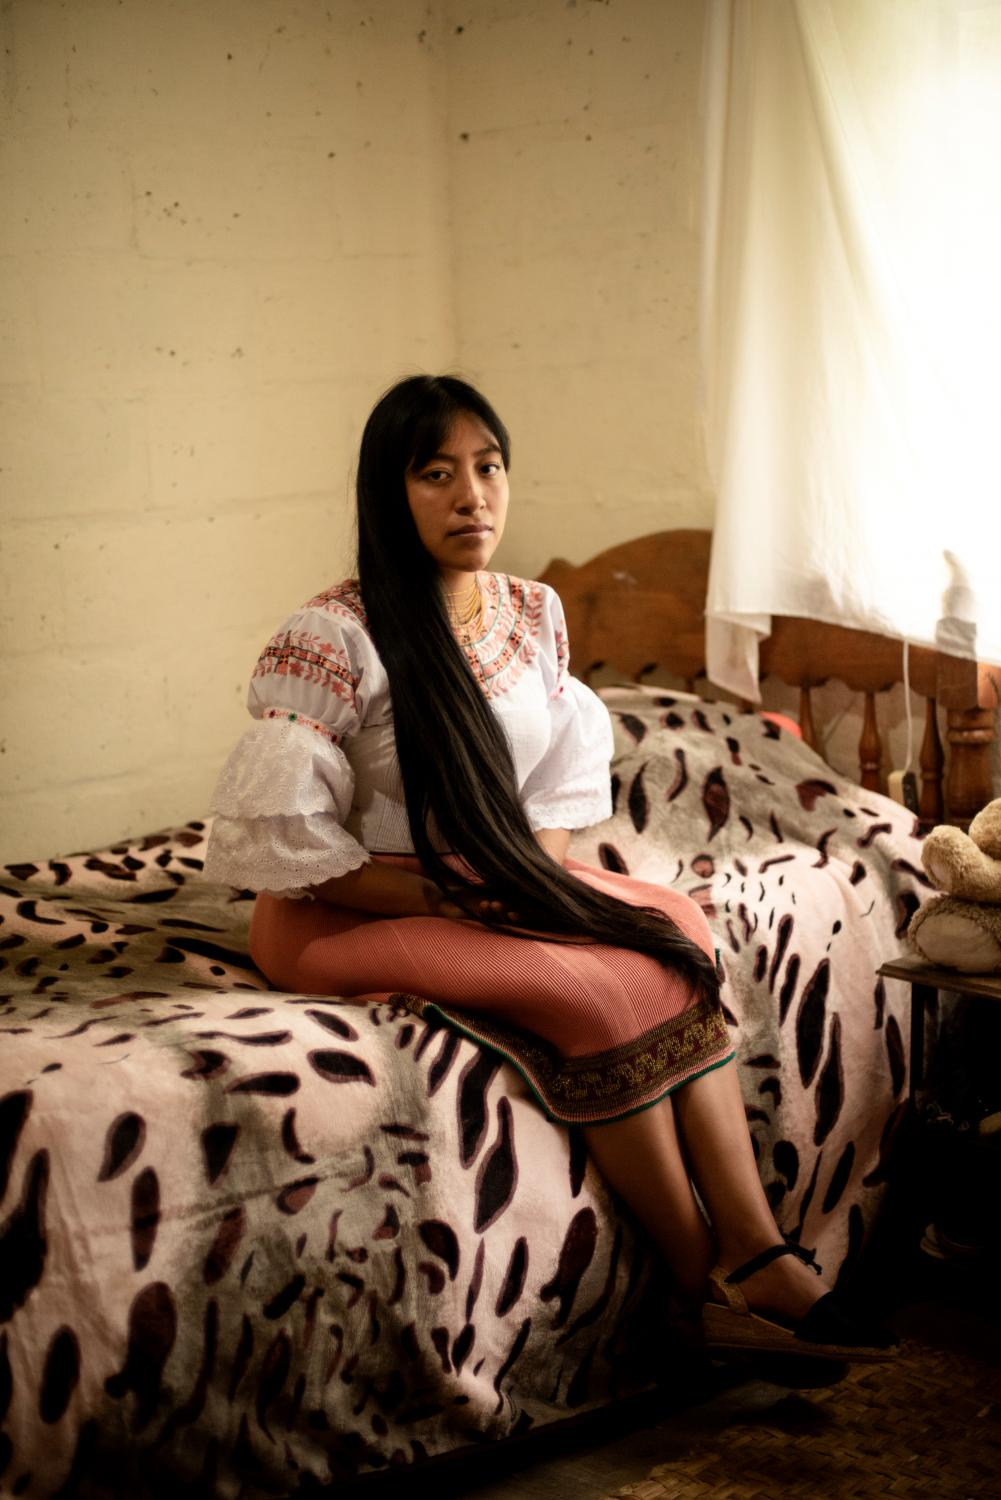 """Katherine Pupiles (20) poses for a portrait into her bedroom. She is a communitarian teacher and physiology student at Quito University. She back to the San Clemente community when the COVID-19 pandemic began. She is one of the five youth indigenous that opened a communitarian education space into the school. As a physiology student, her motivation is to help the children grow up in a healthy environment. """"They made me feel good with them, they transmit me beautiful happiness, it is not possible explained it in words, they make me feel good, their energy is contagious. I wanted to be with them again"""" . April 2, 2021. San Clemente. Johis Alarcón."""